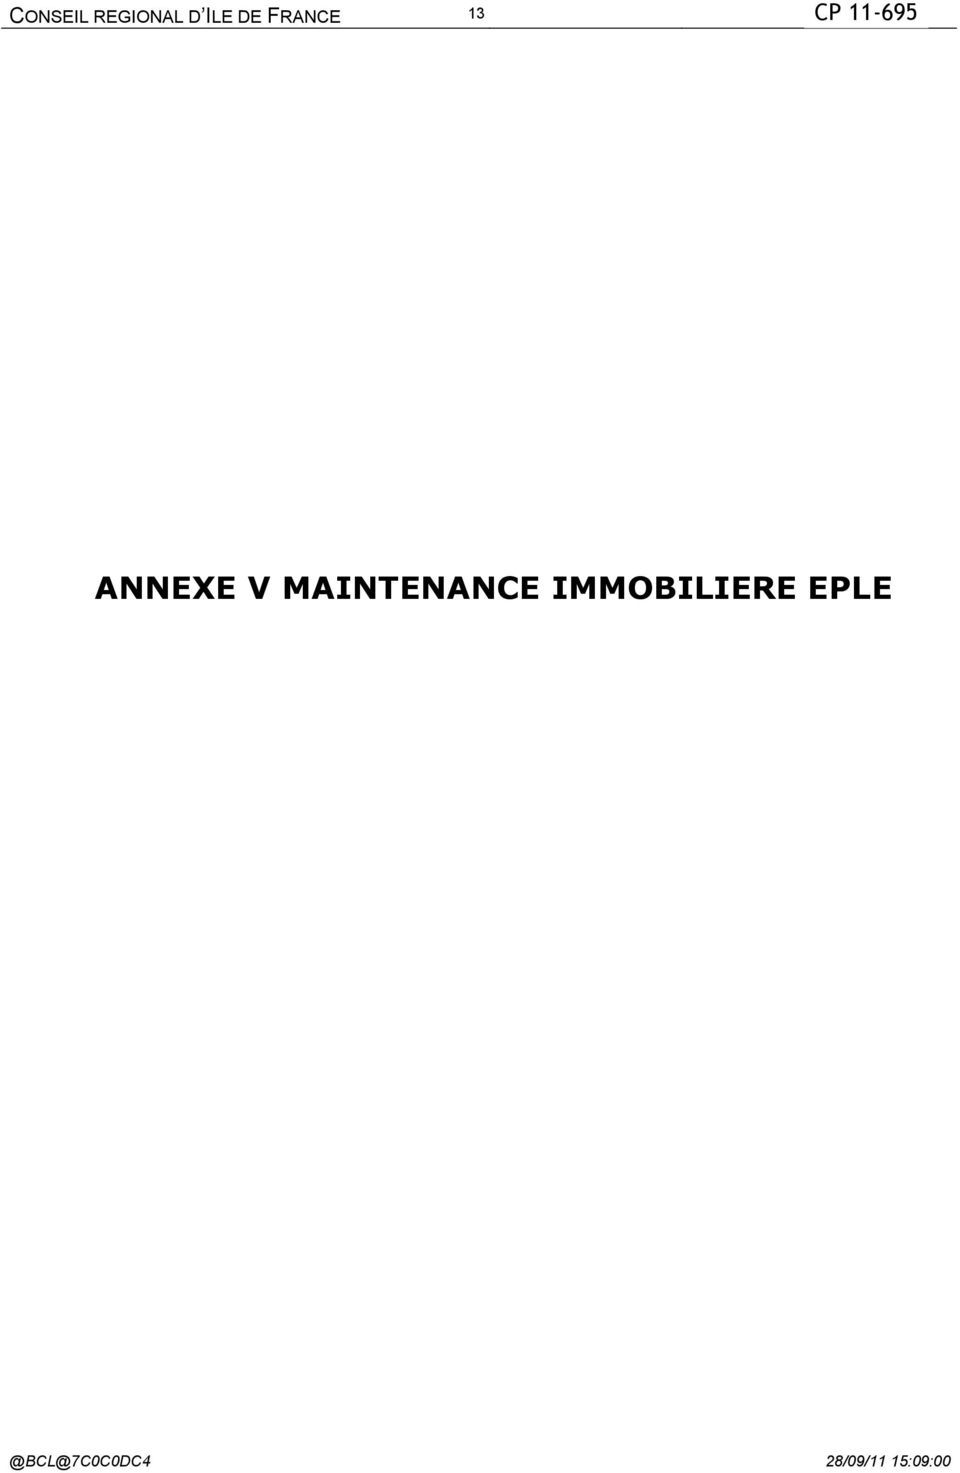 MAINTENANCE IMMOBILIERE EPLE